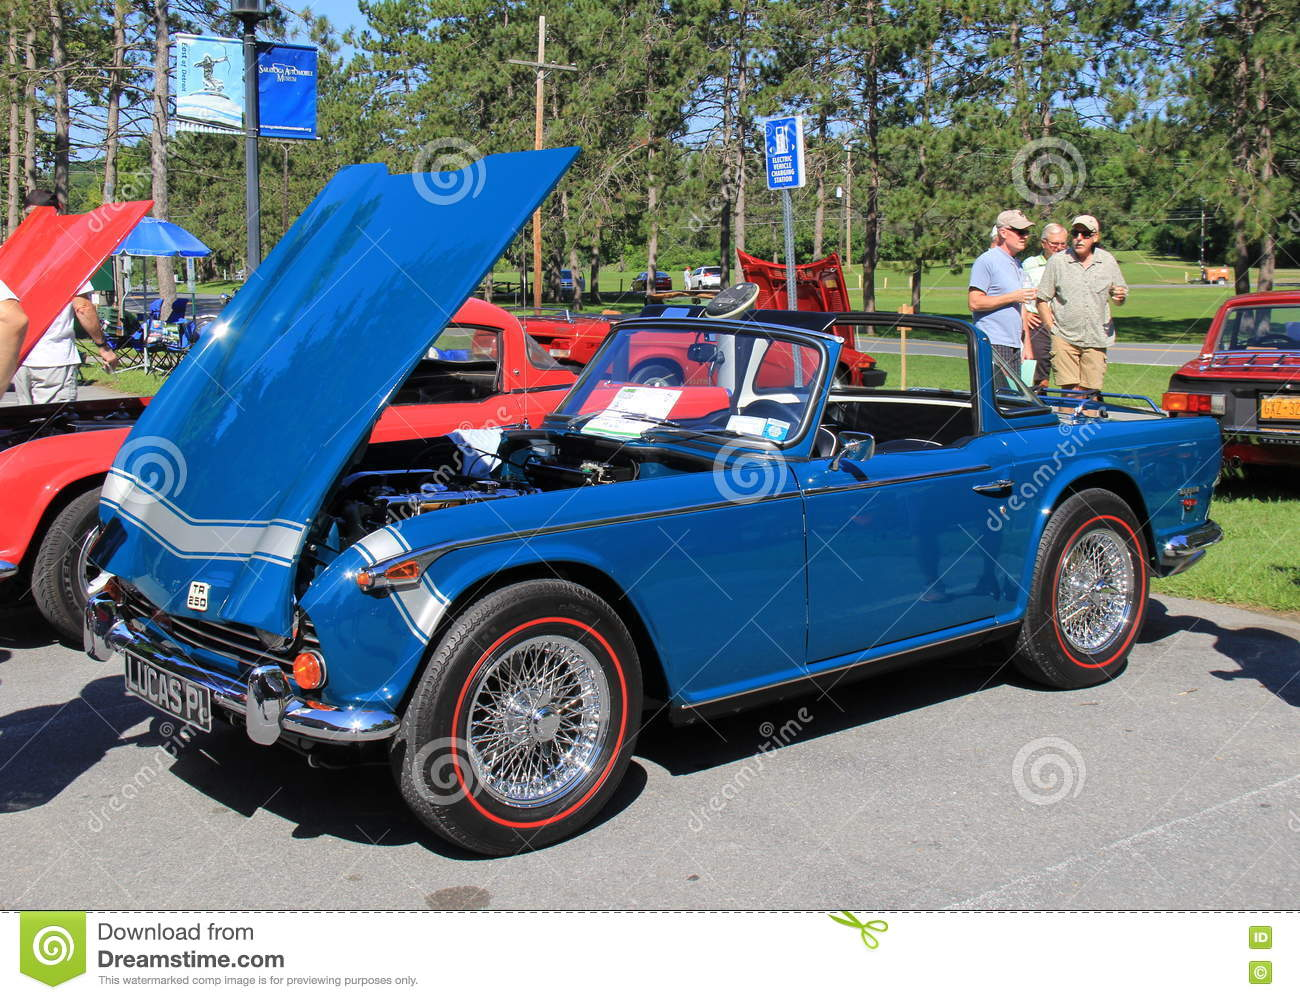 Fancy Antique Cars On Display At Show Saratoga Automobile Museum - Saratoga auto museum car show